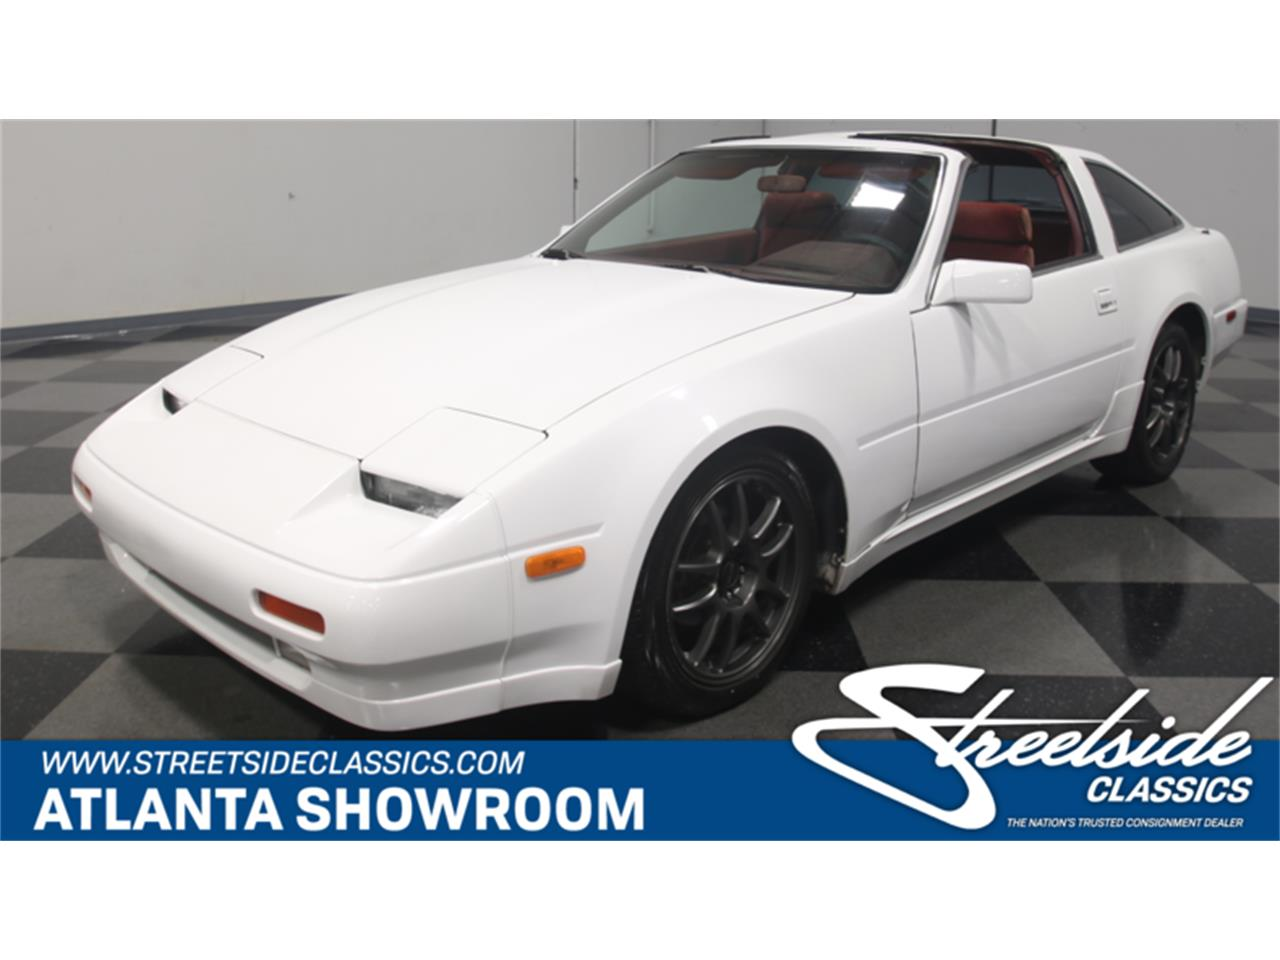 For Sale: 1987 Nissan 300ZX In Lithia Springs, Georgia